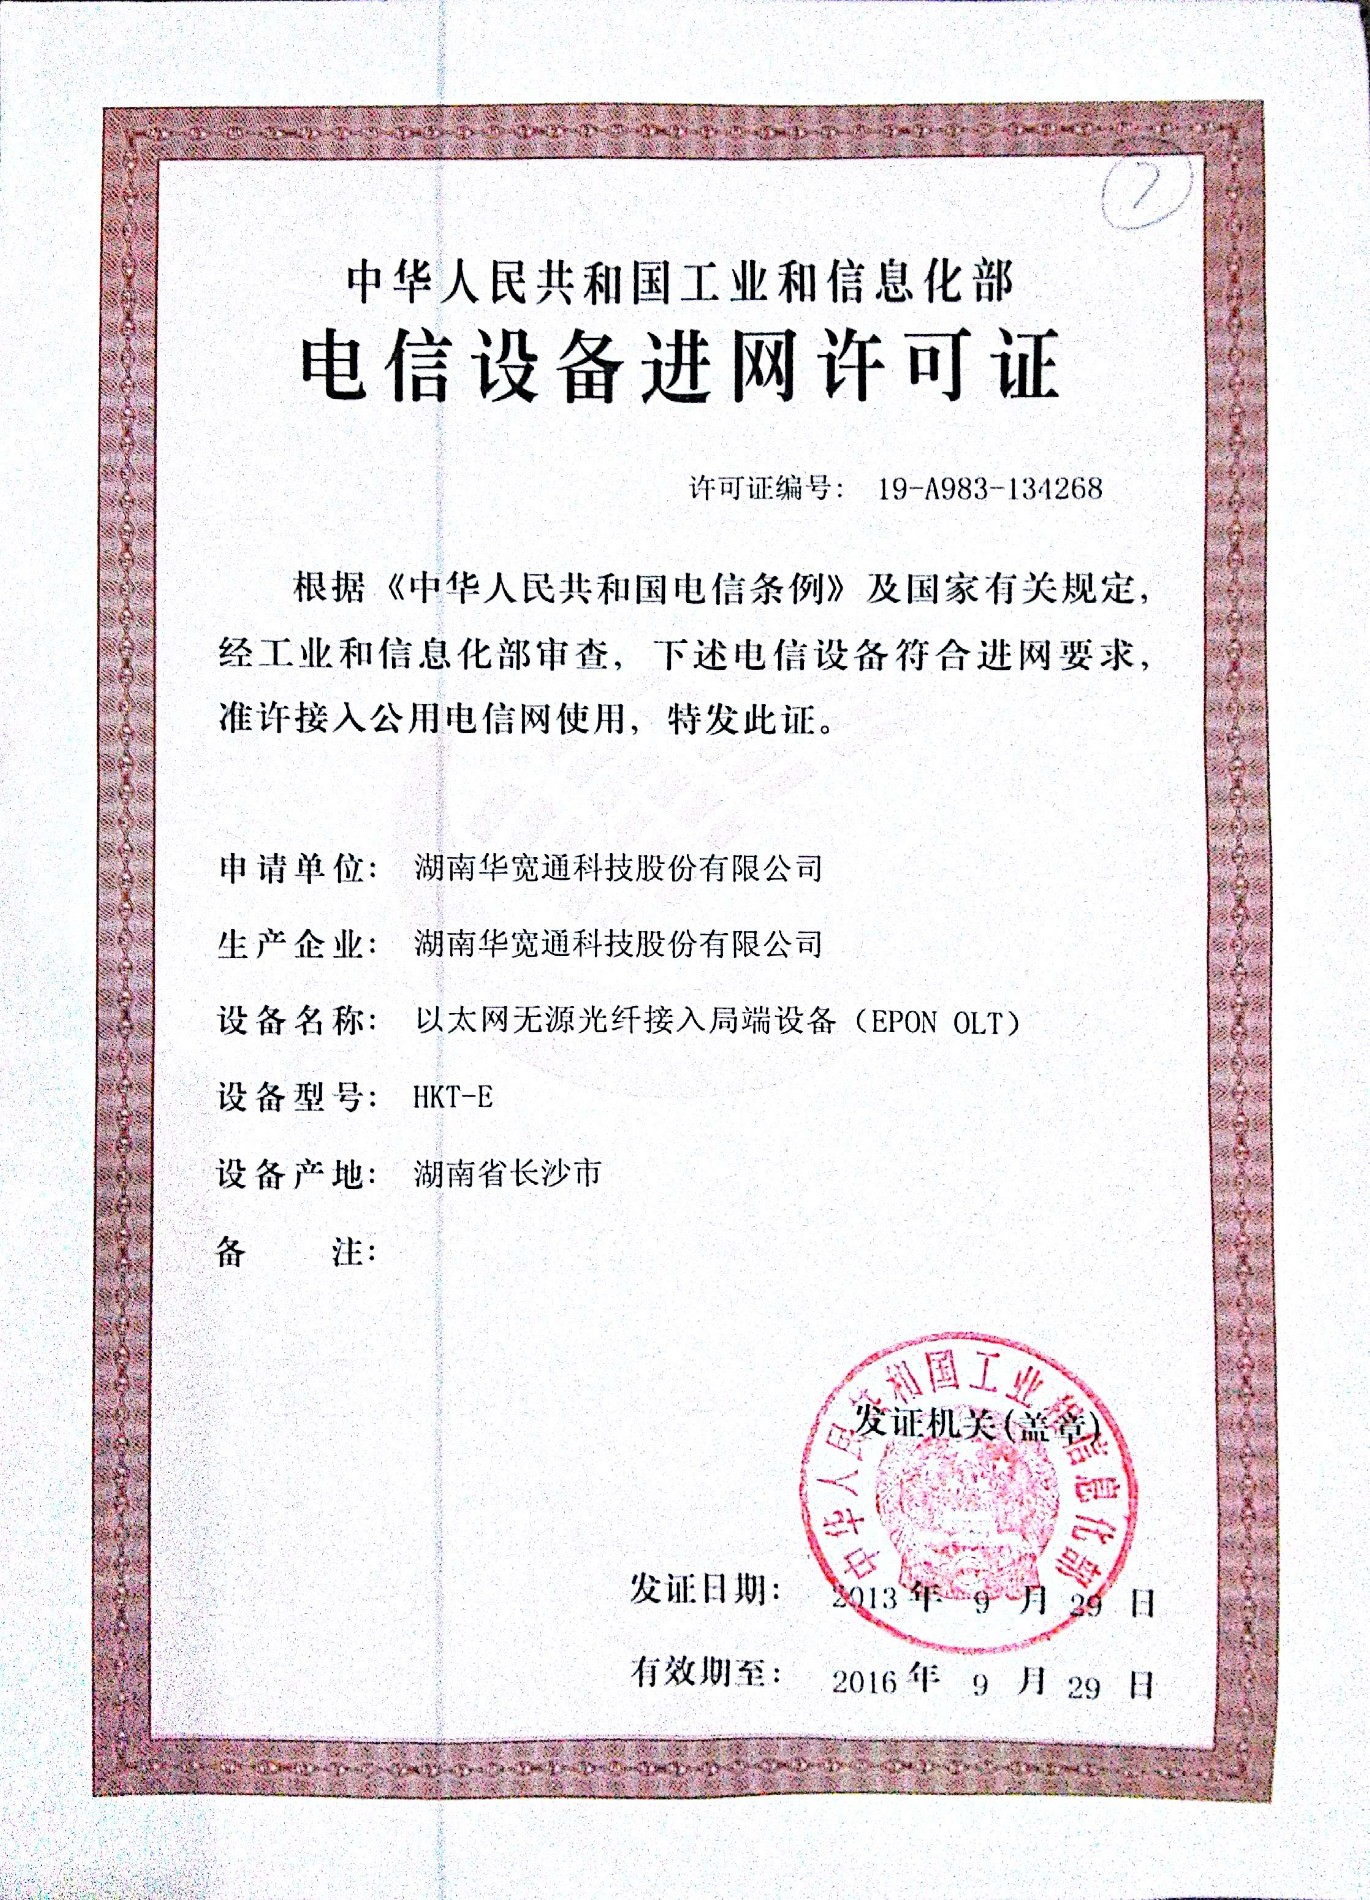 network access license